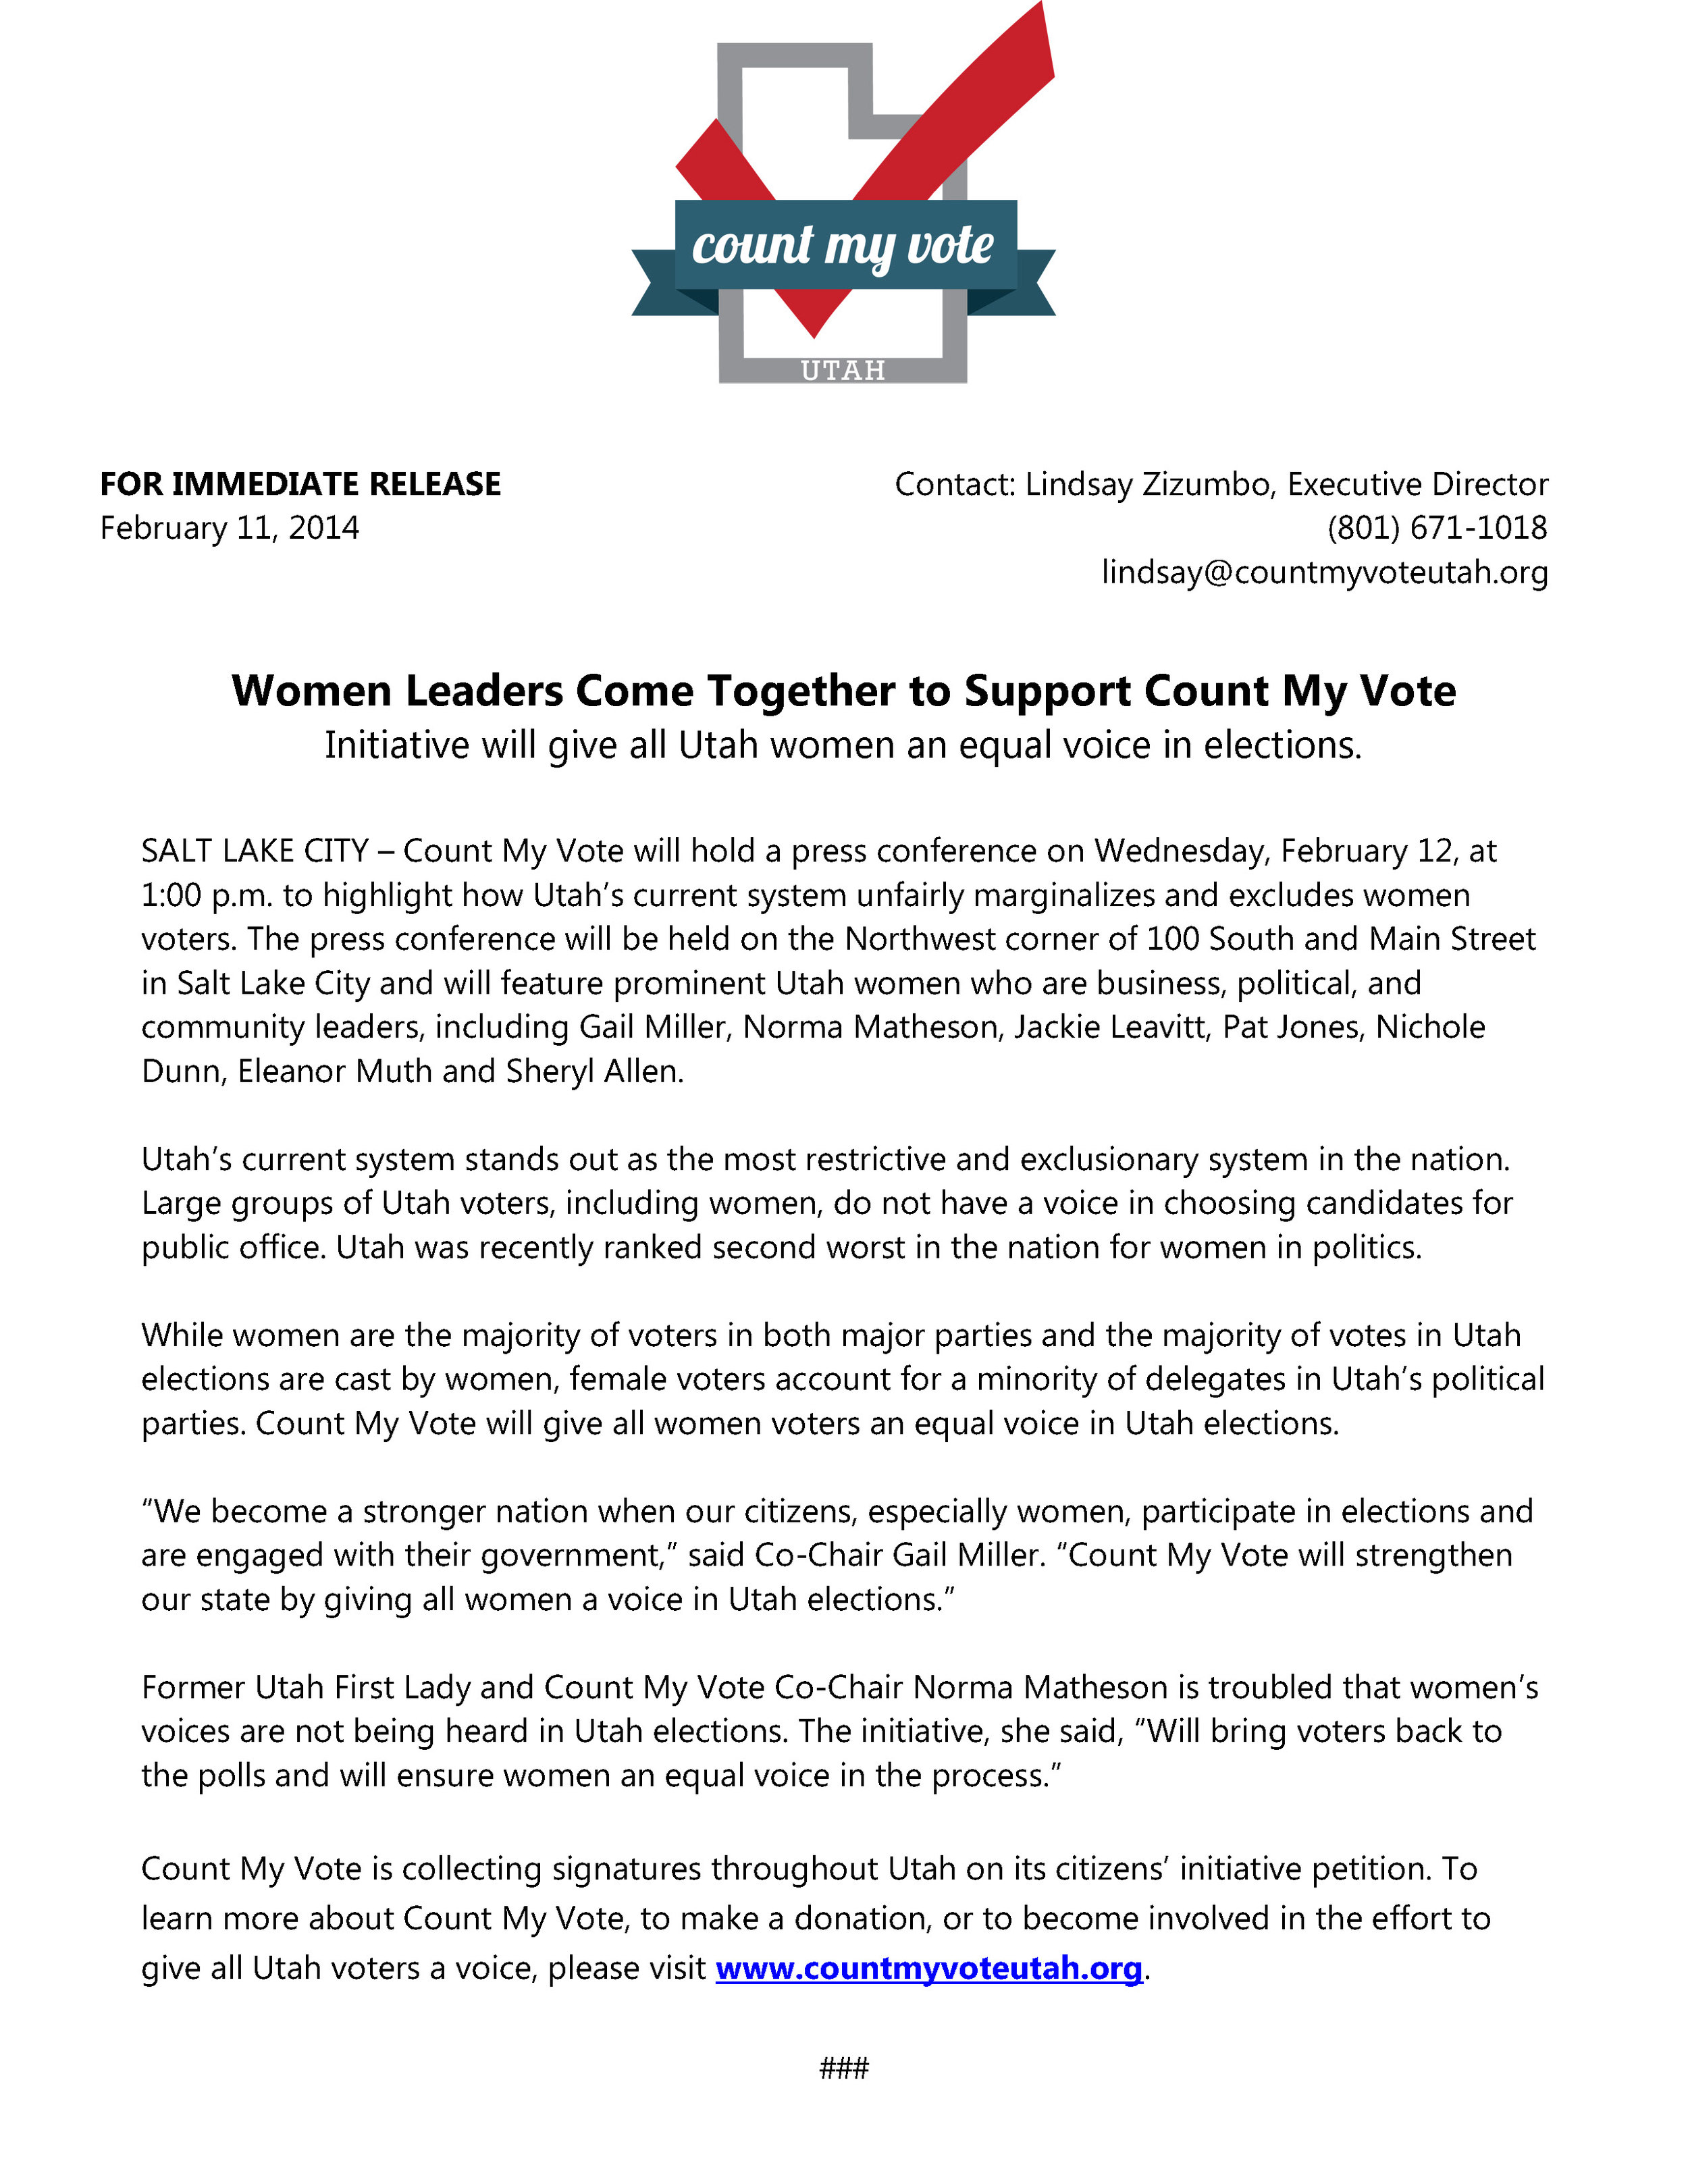 Women Leaders Come Together to Support Count My Vote.jpg